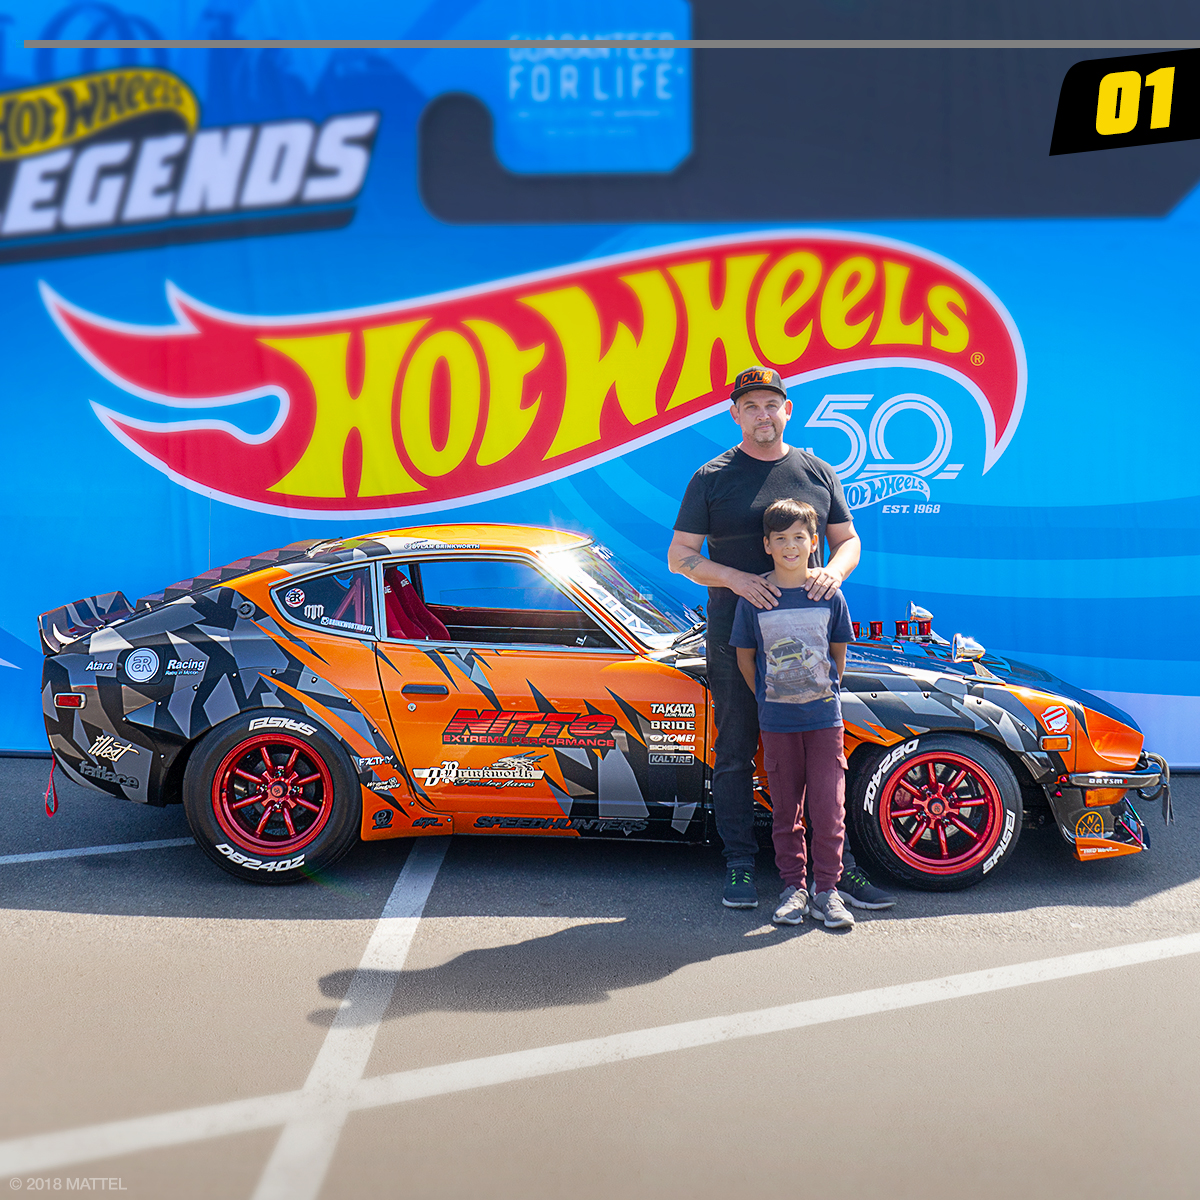 The Hot Wheels Legends Tour Is Headed To 18 Cities Across